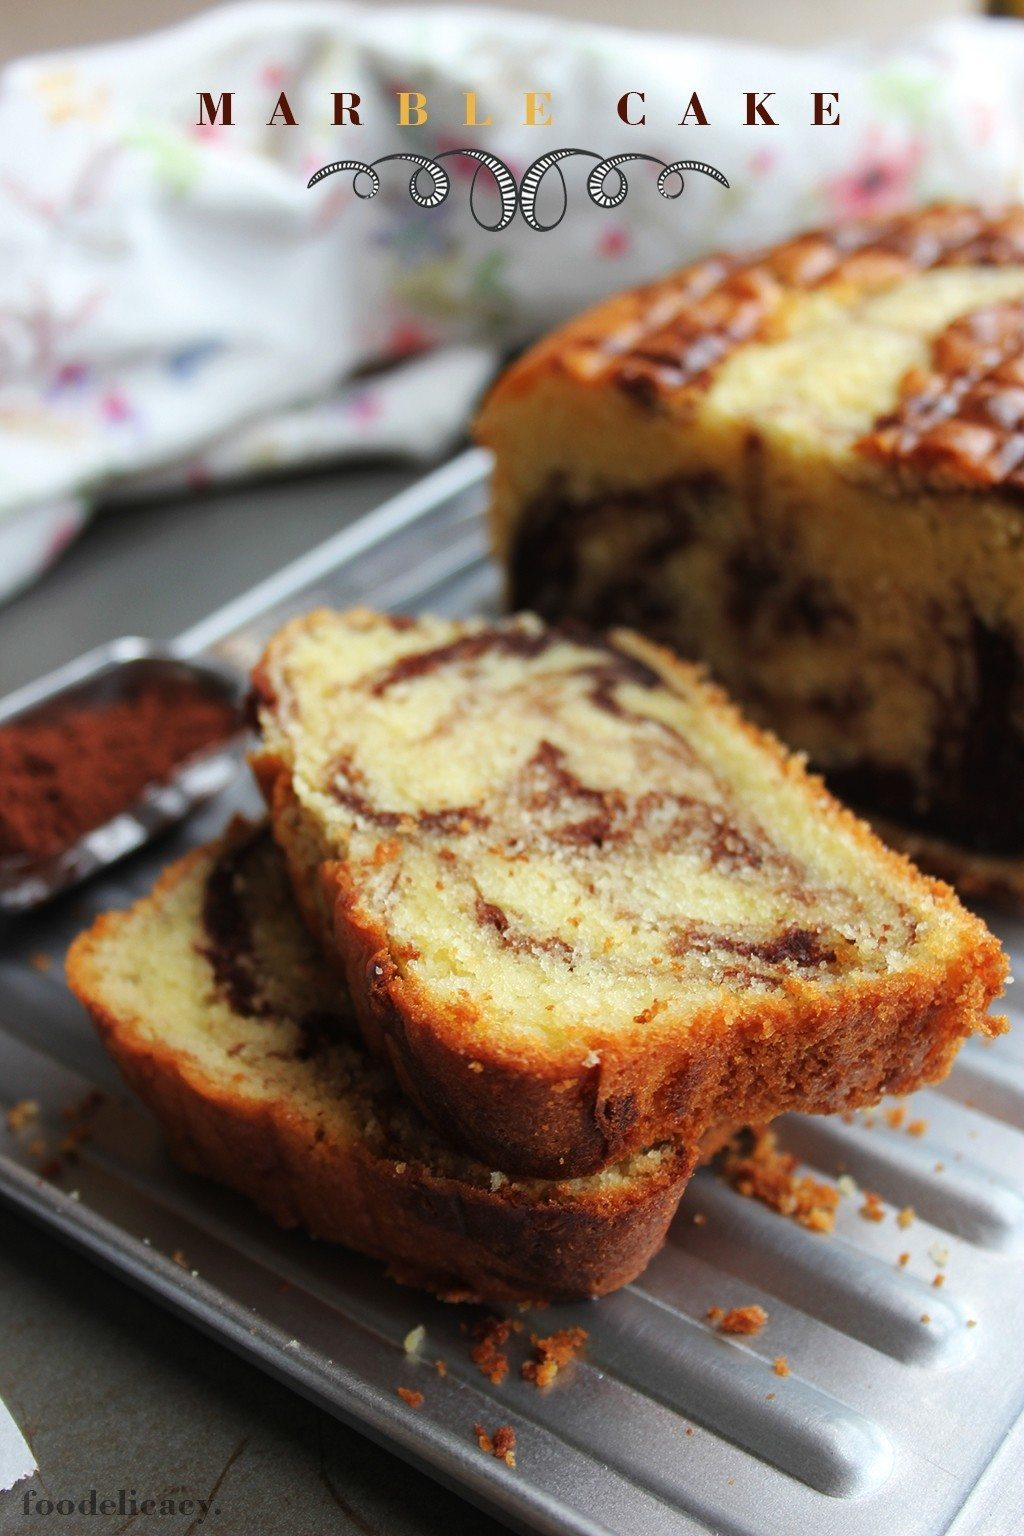 Marble_Cake_Title_3D